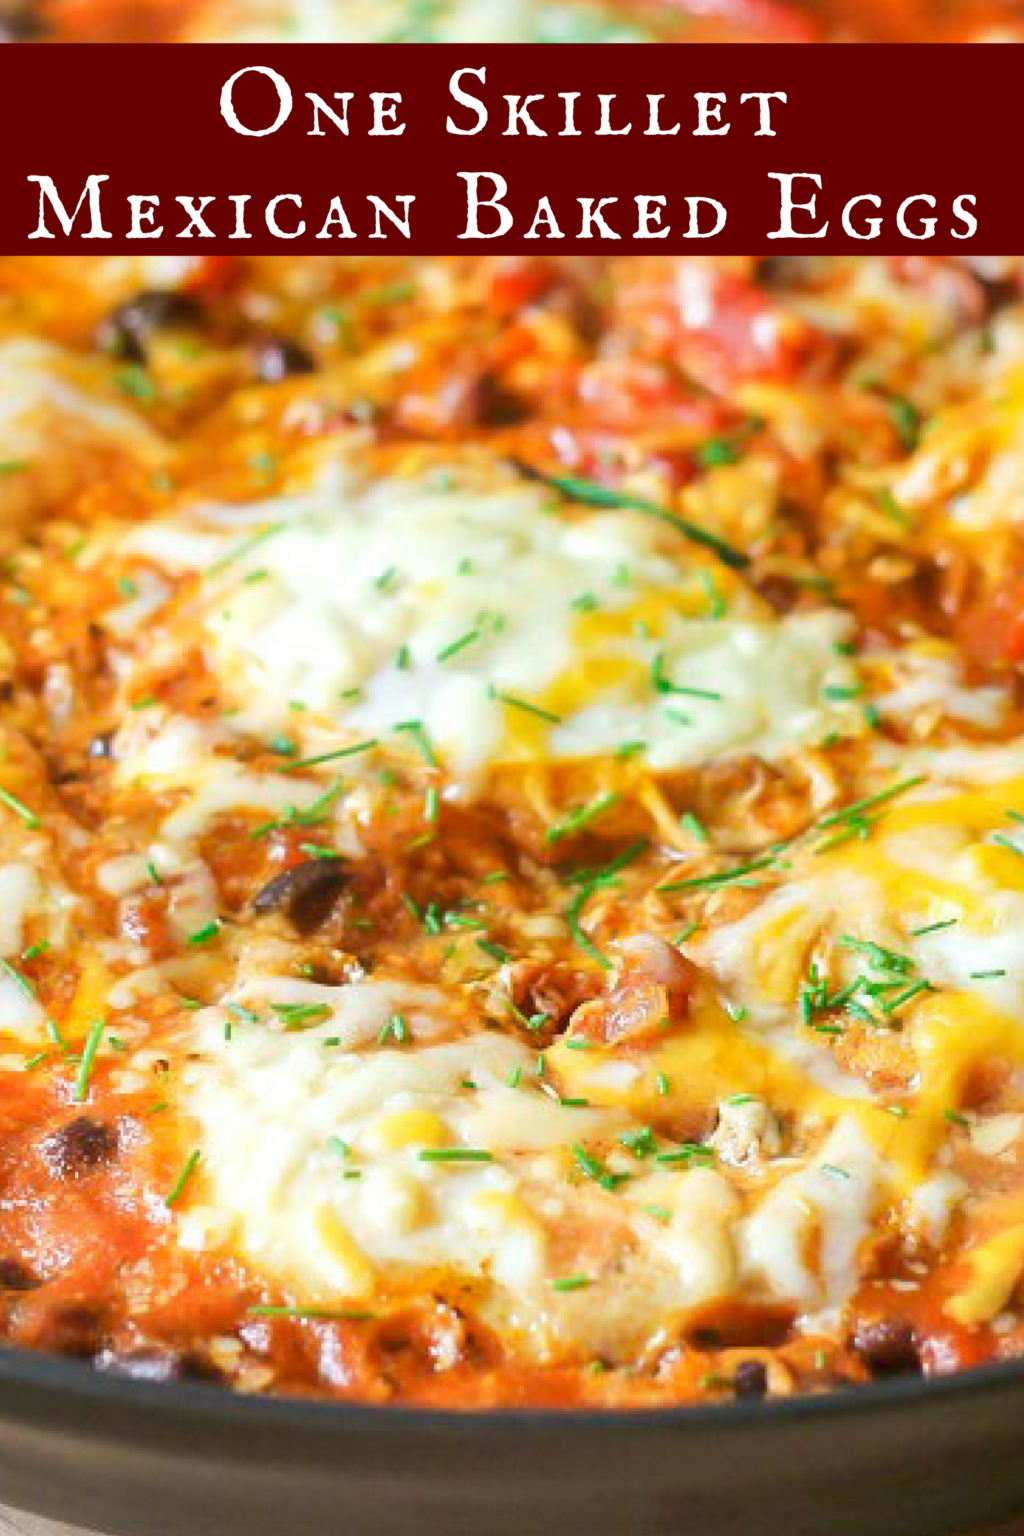 Mexican Baked Eggs (One Skillet) - Domestic Superhero